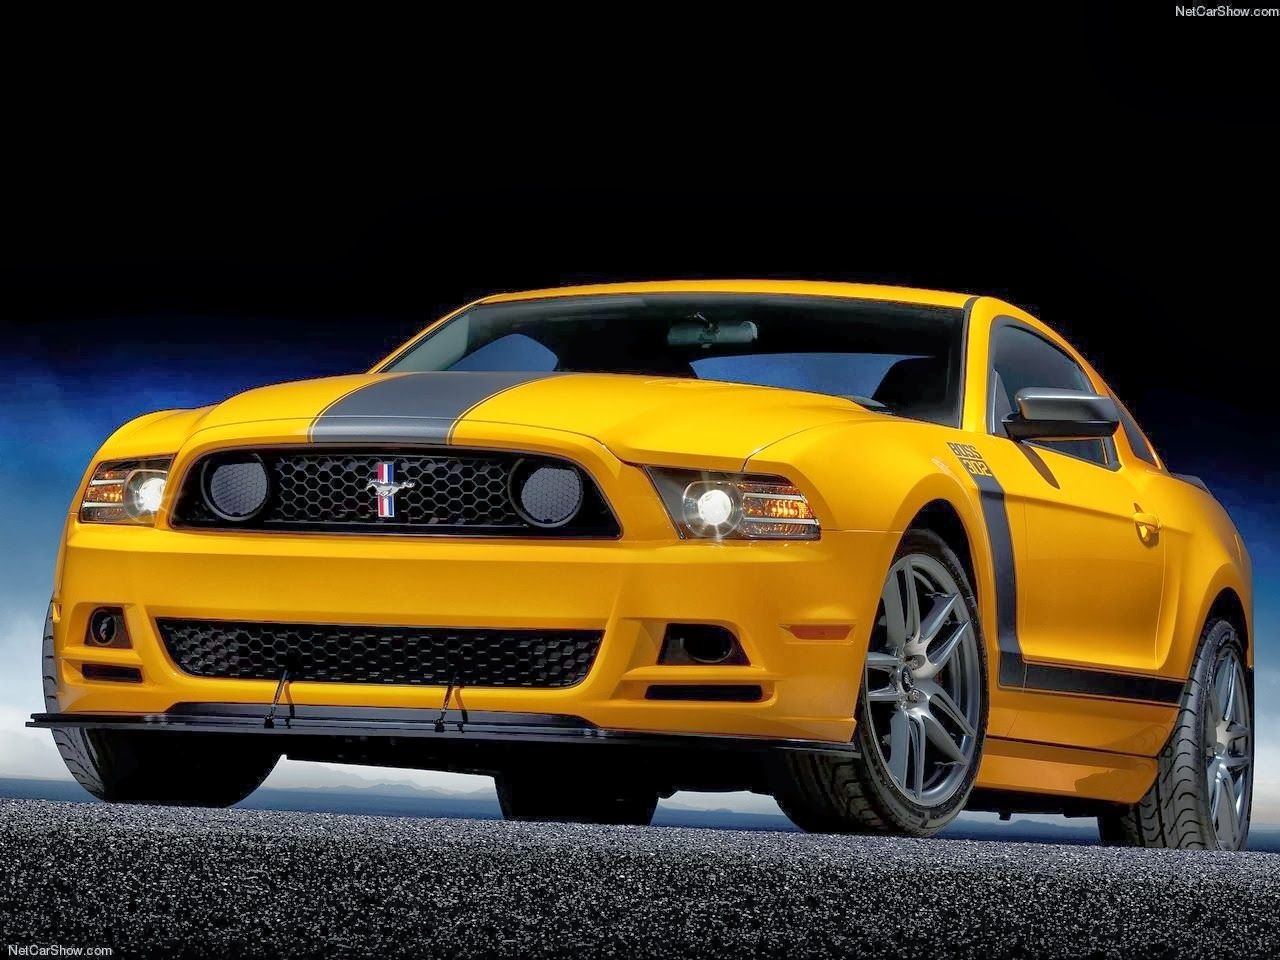 ford mustang boss 302 wallpaper. Black Bedroom Furniture Sets. Home Design Ideas